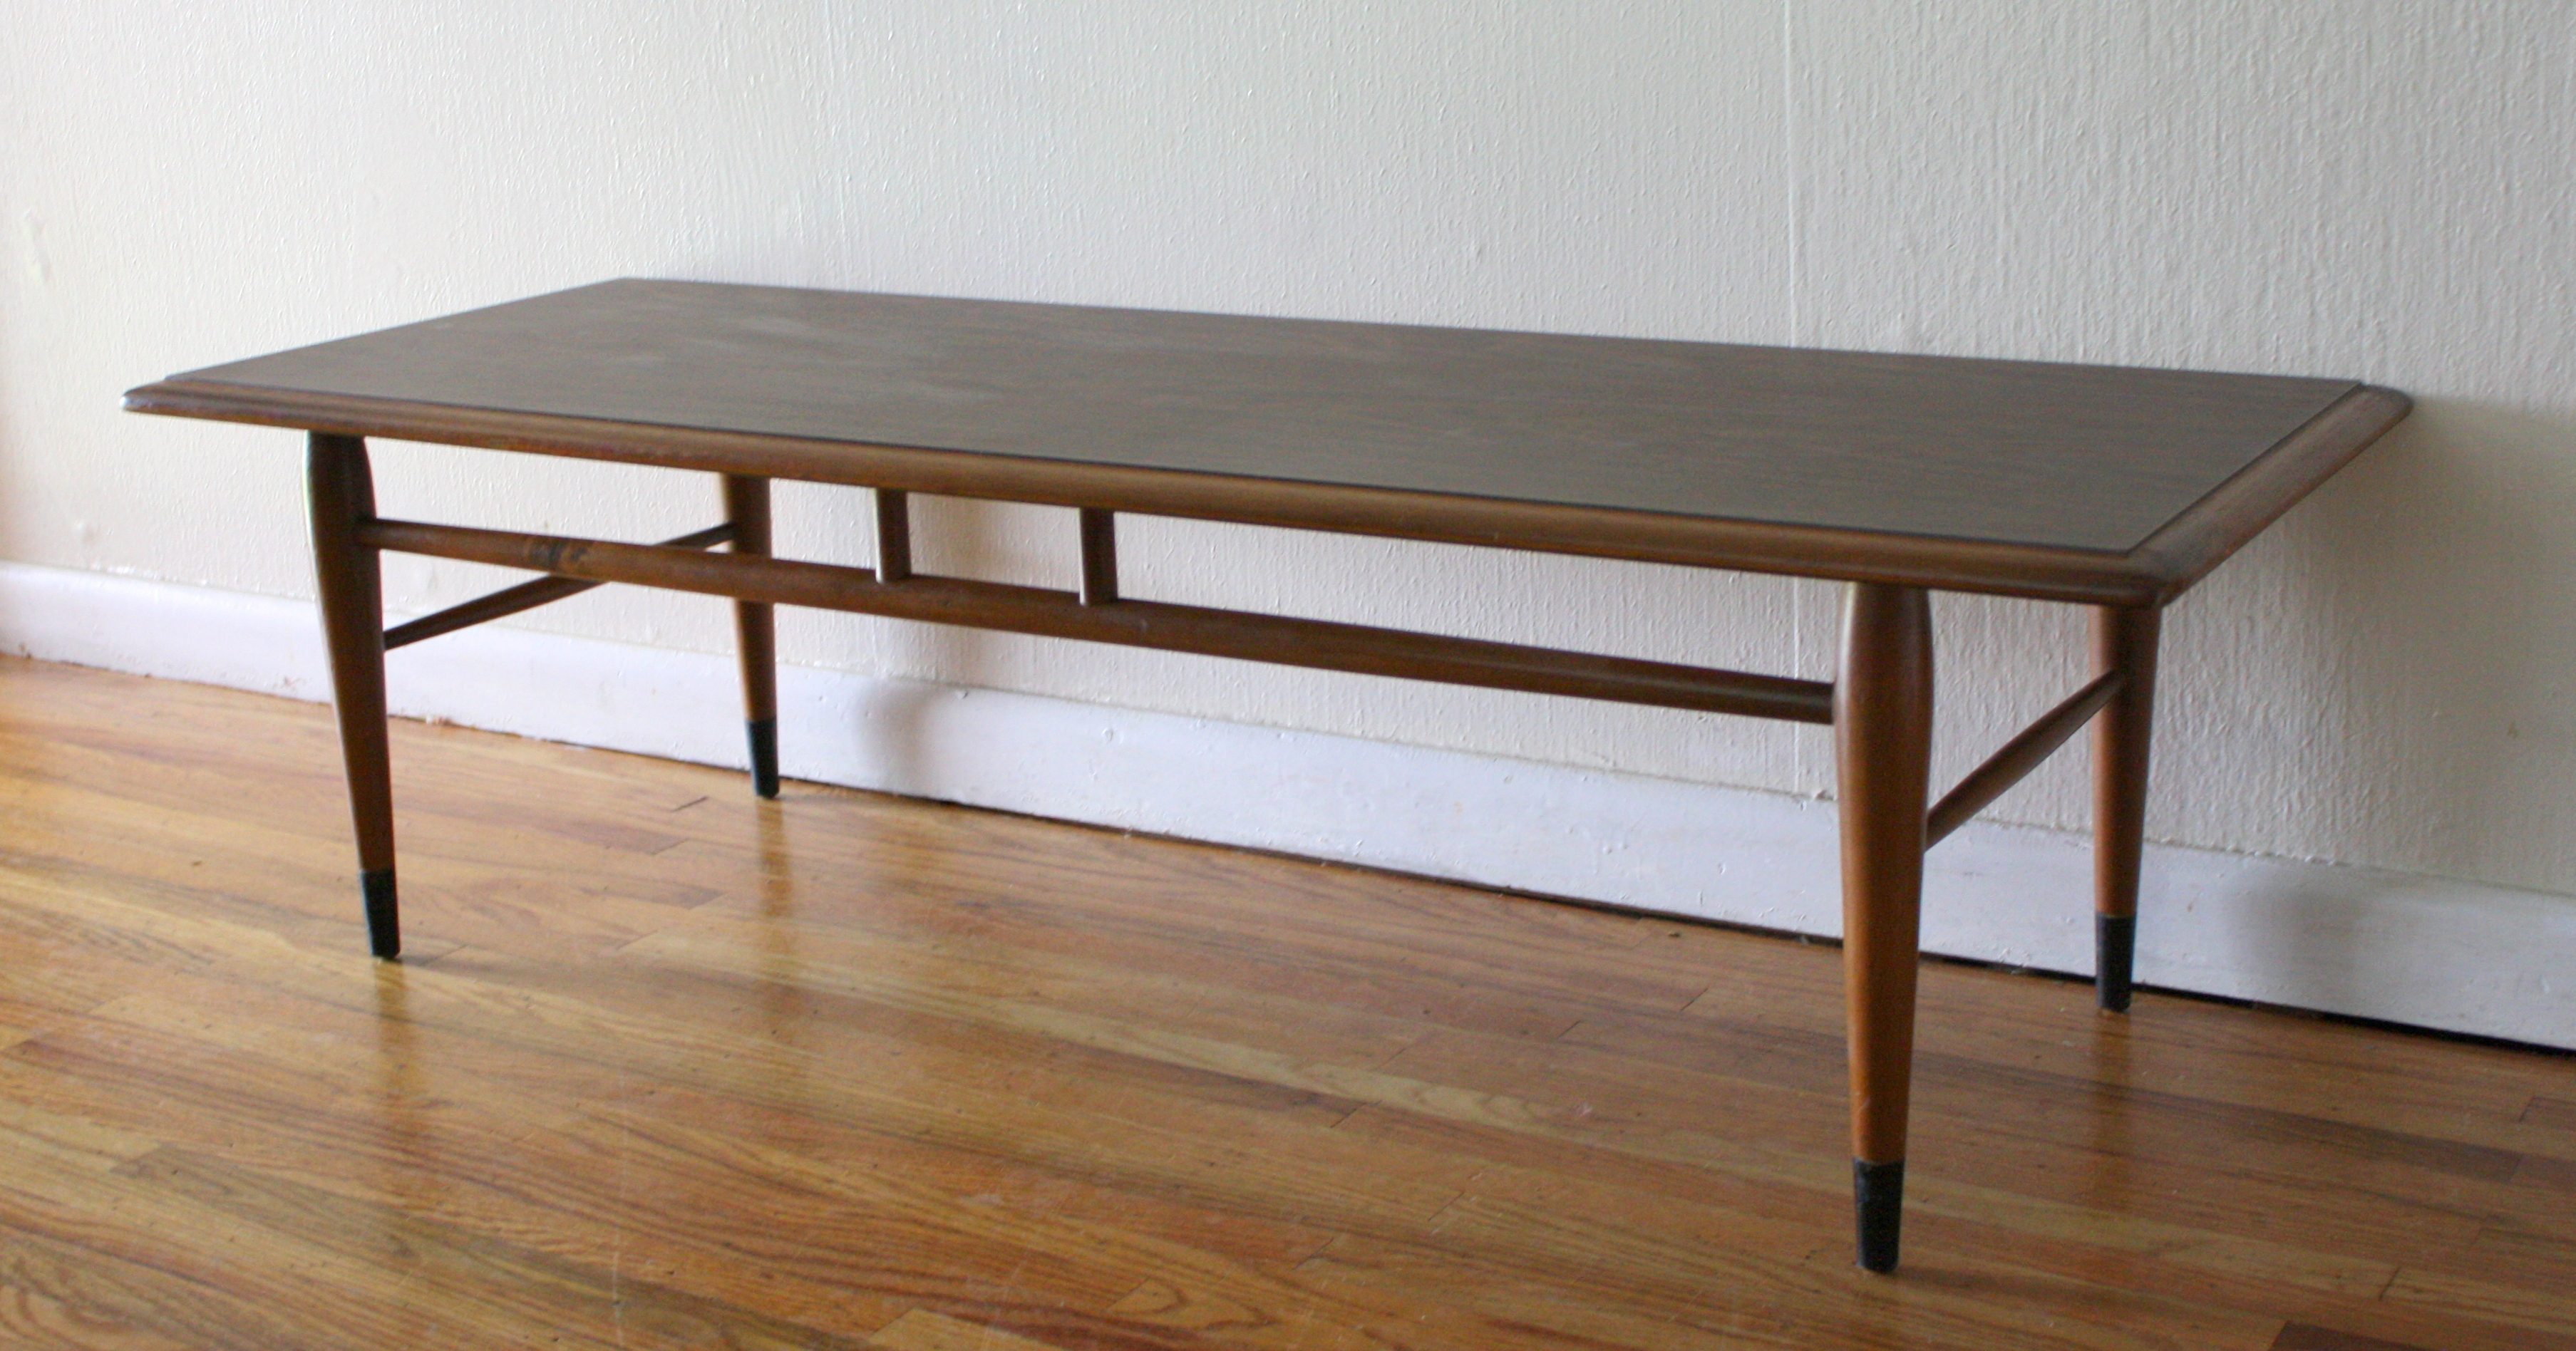 Lane Mid Century Modern Coffee Table Rascalartsnyc